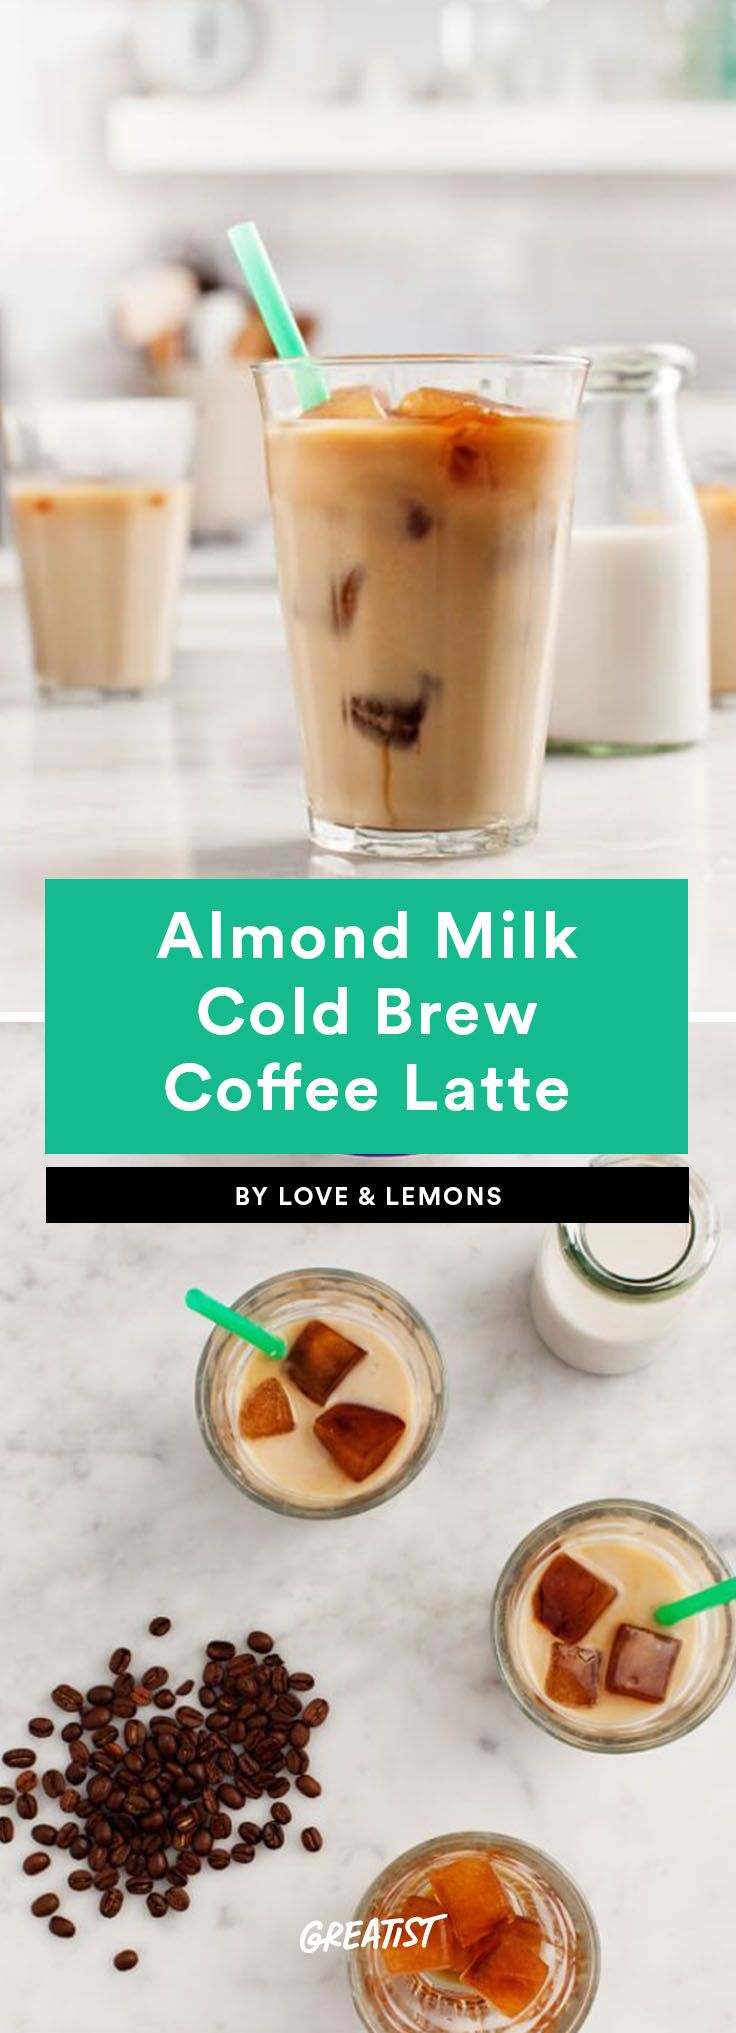 11 Ways to Make Iced Coffee Taste Even Better Cold brew